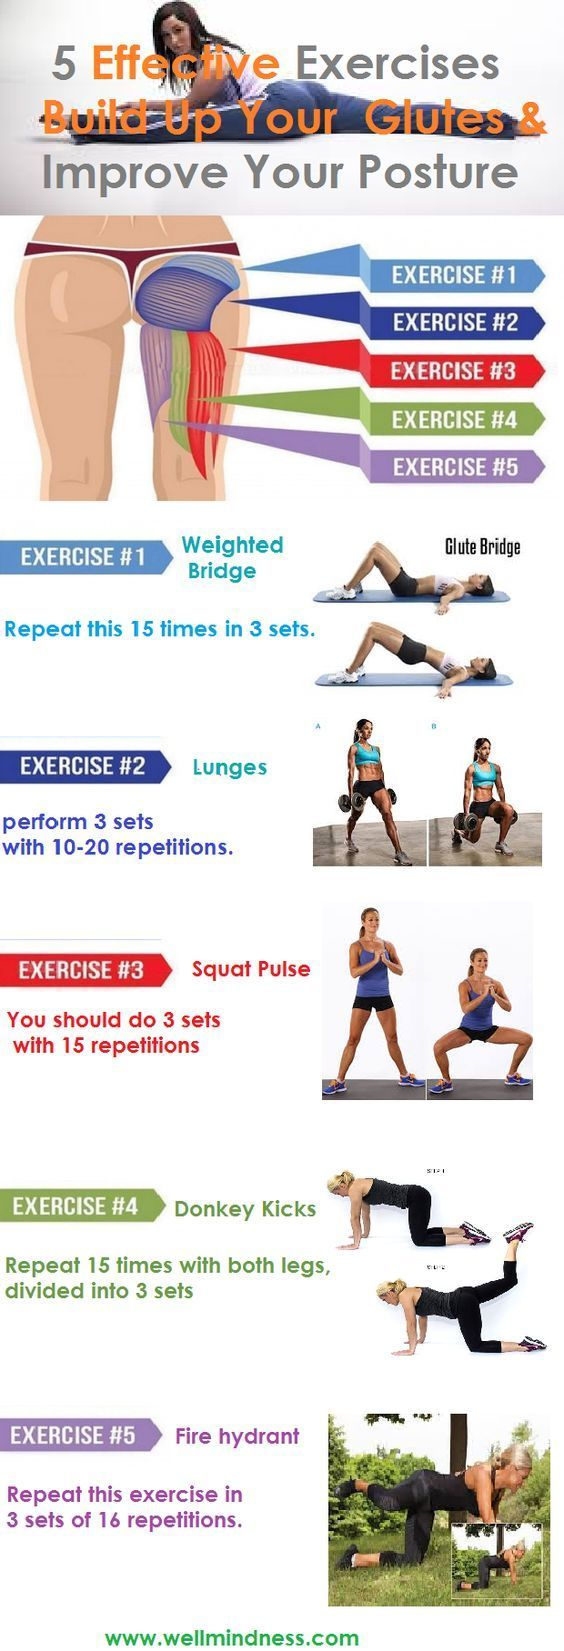 5 effective exercises to build your glutes and improve your posture